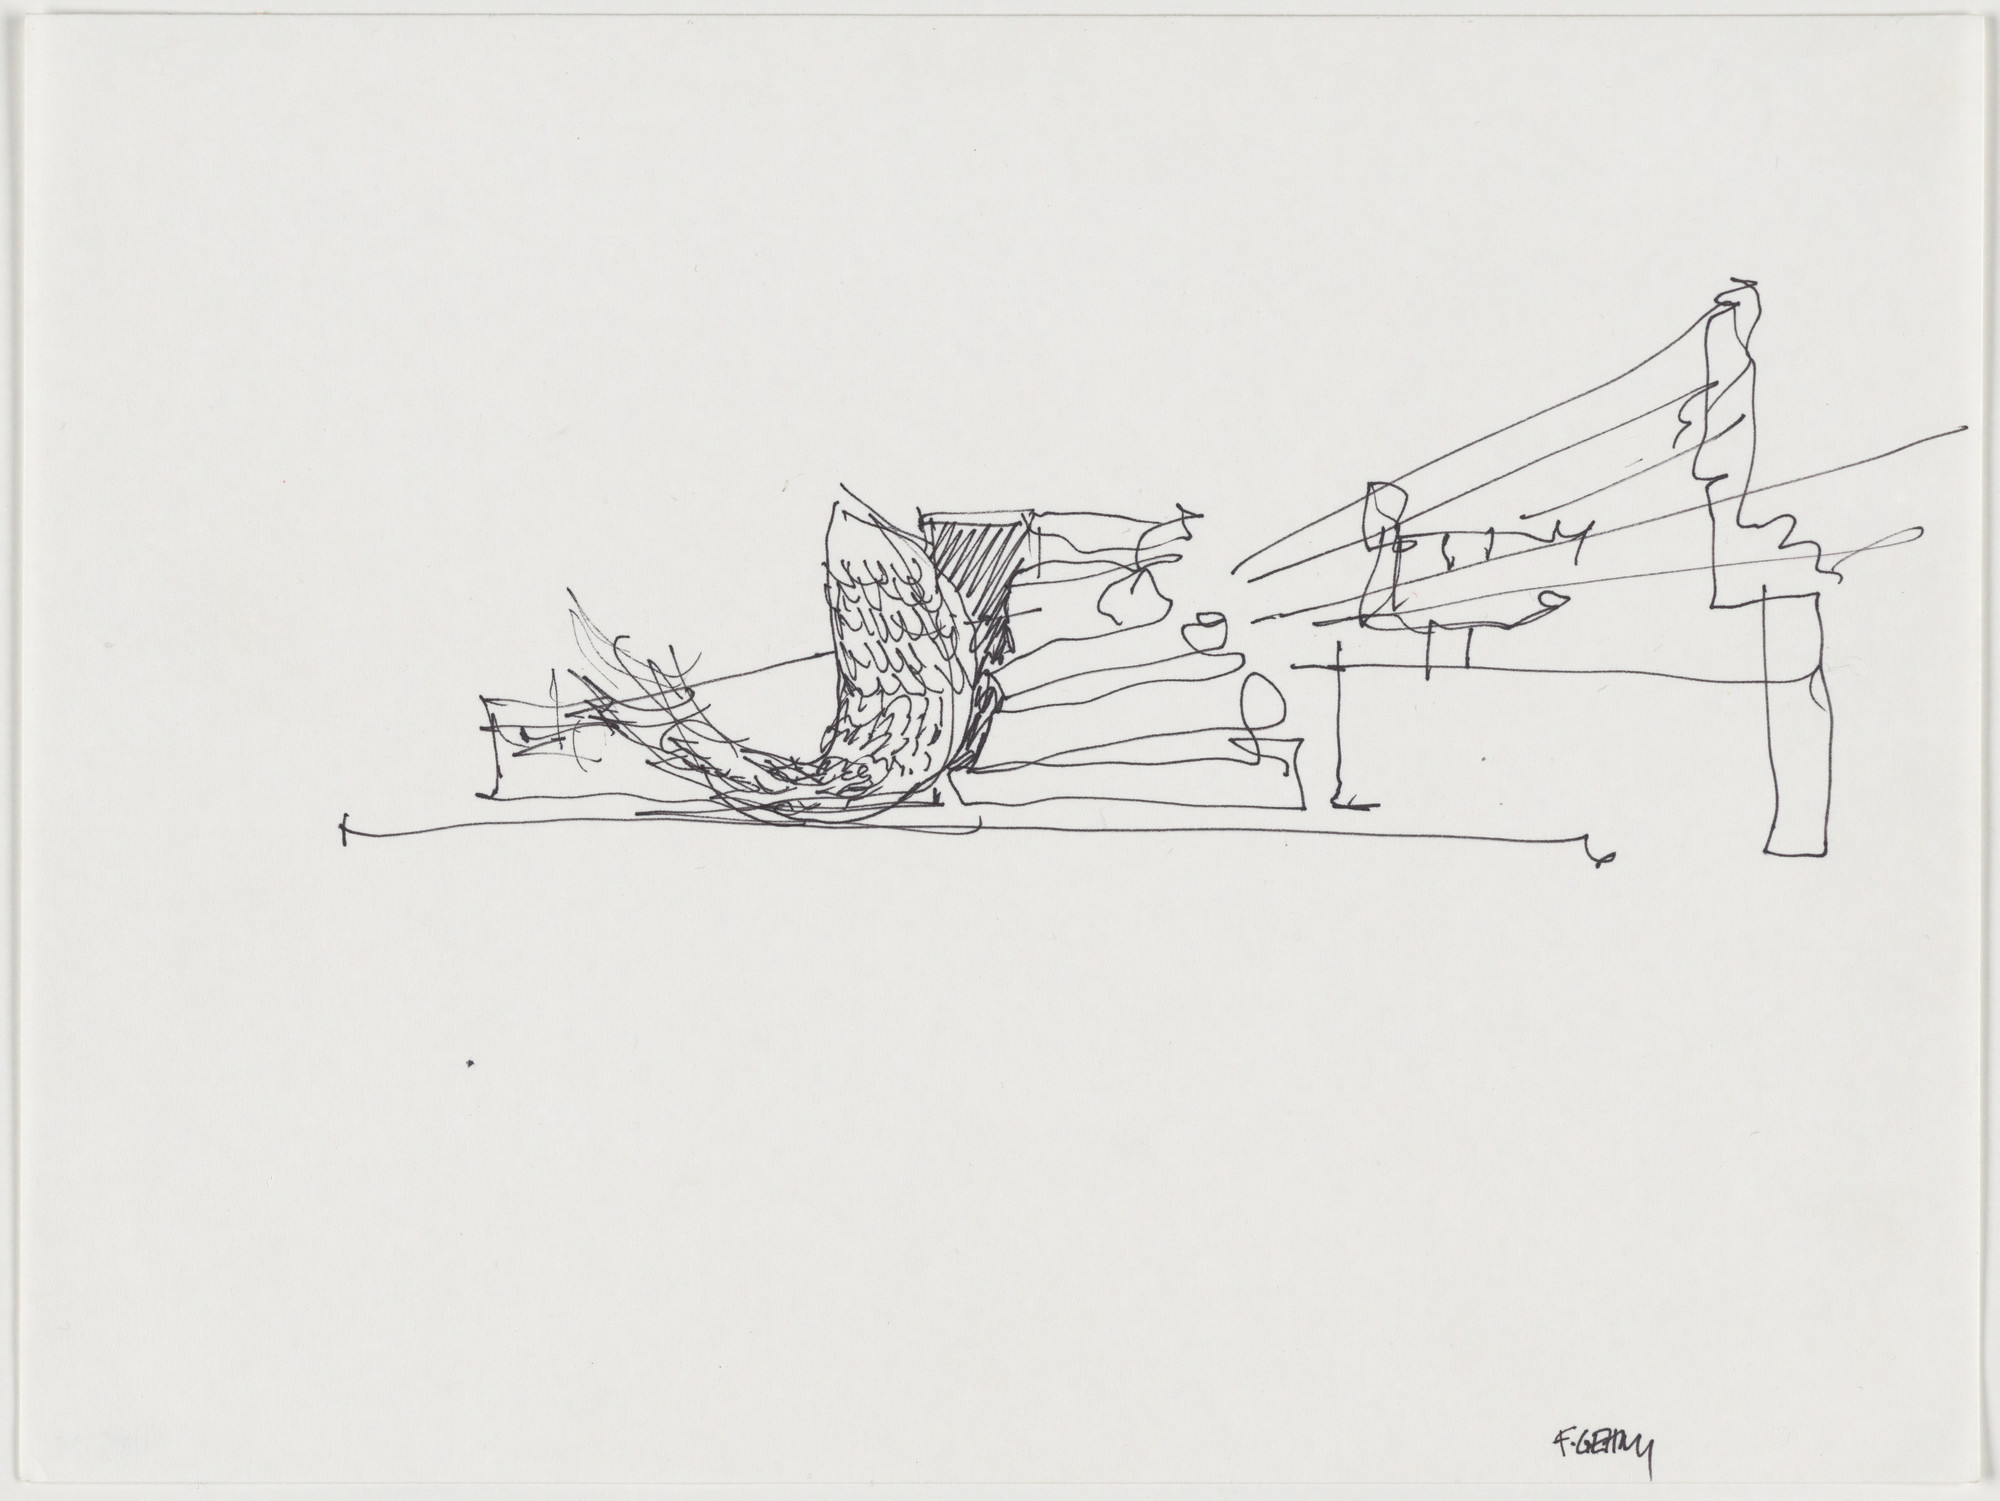 Frank O. Gehry. Sketch for Fishdance Restaurant, Kobe, Japan, Exterior perspective. 1986-87